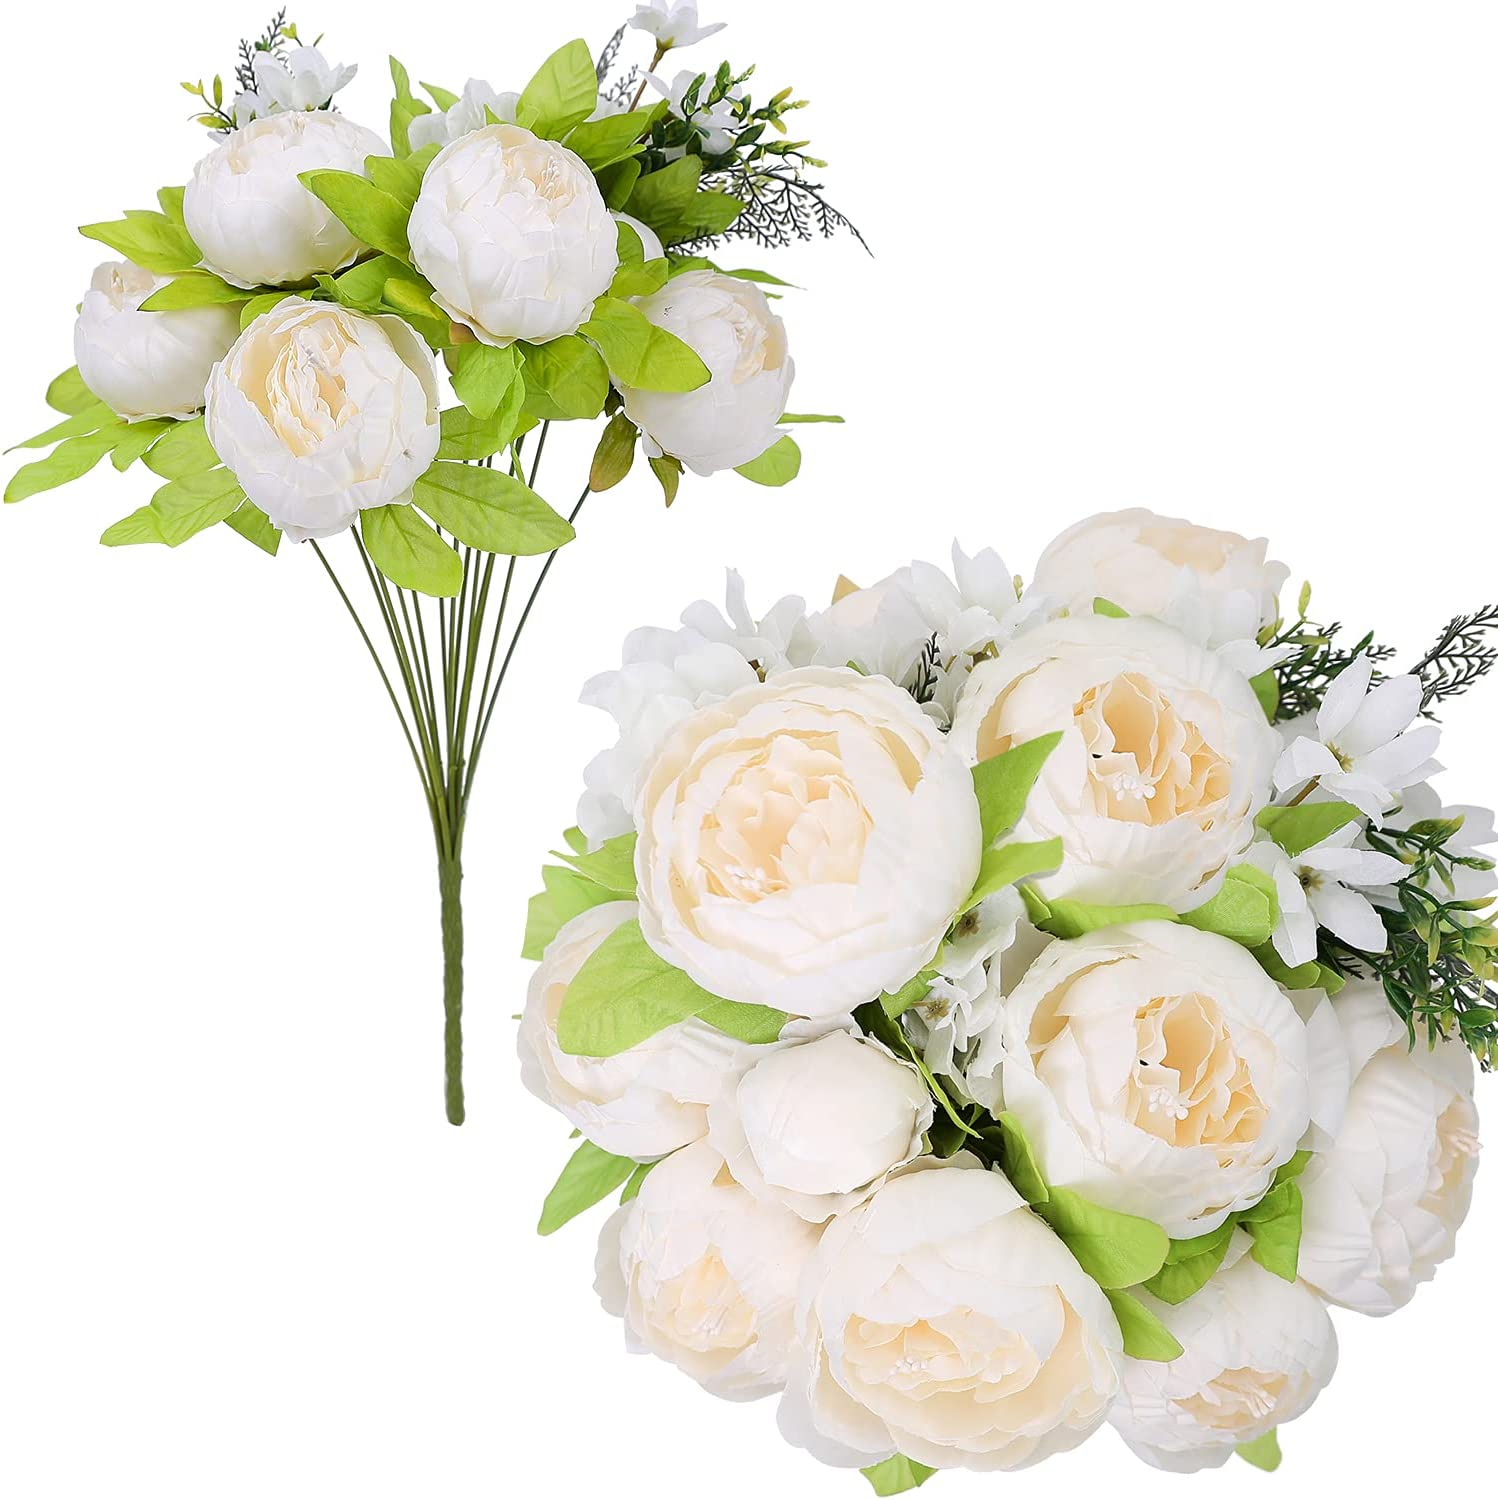 JUSTOYOU2 Bunches Artificial White Flowers 12 Heads Peonies Virginia Beach Mall Limited time for free shipping